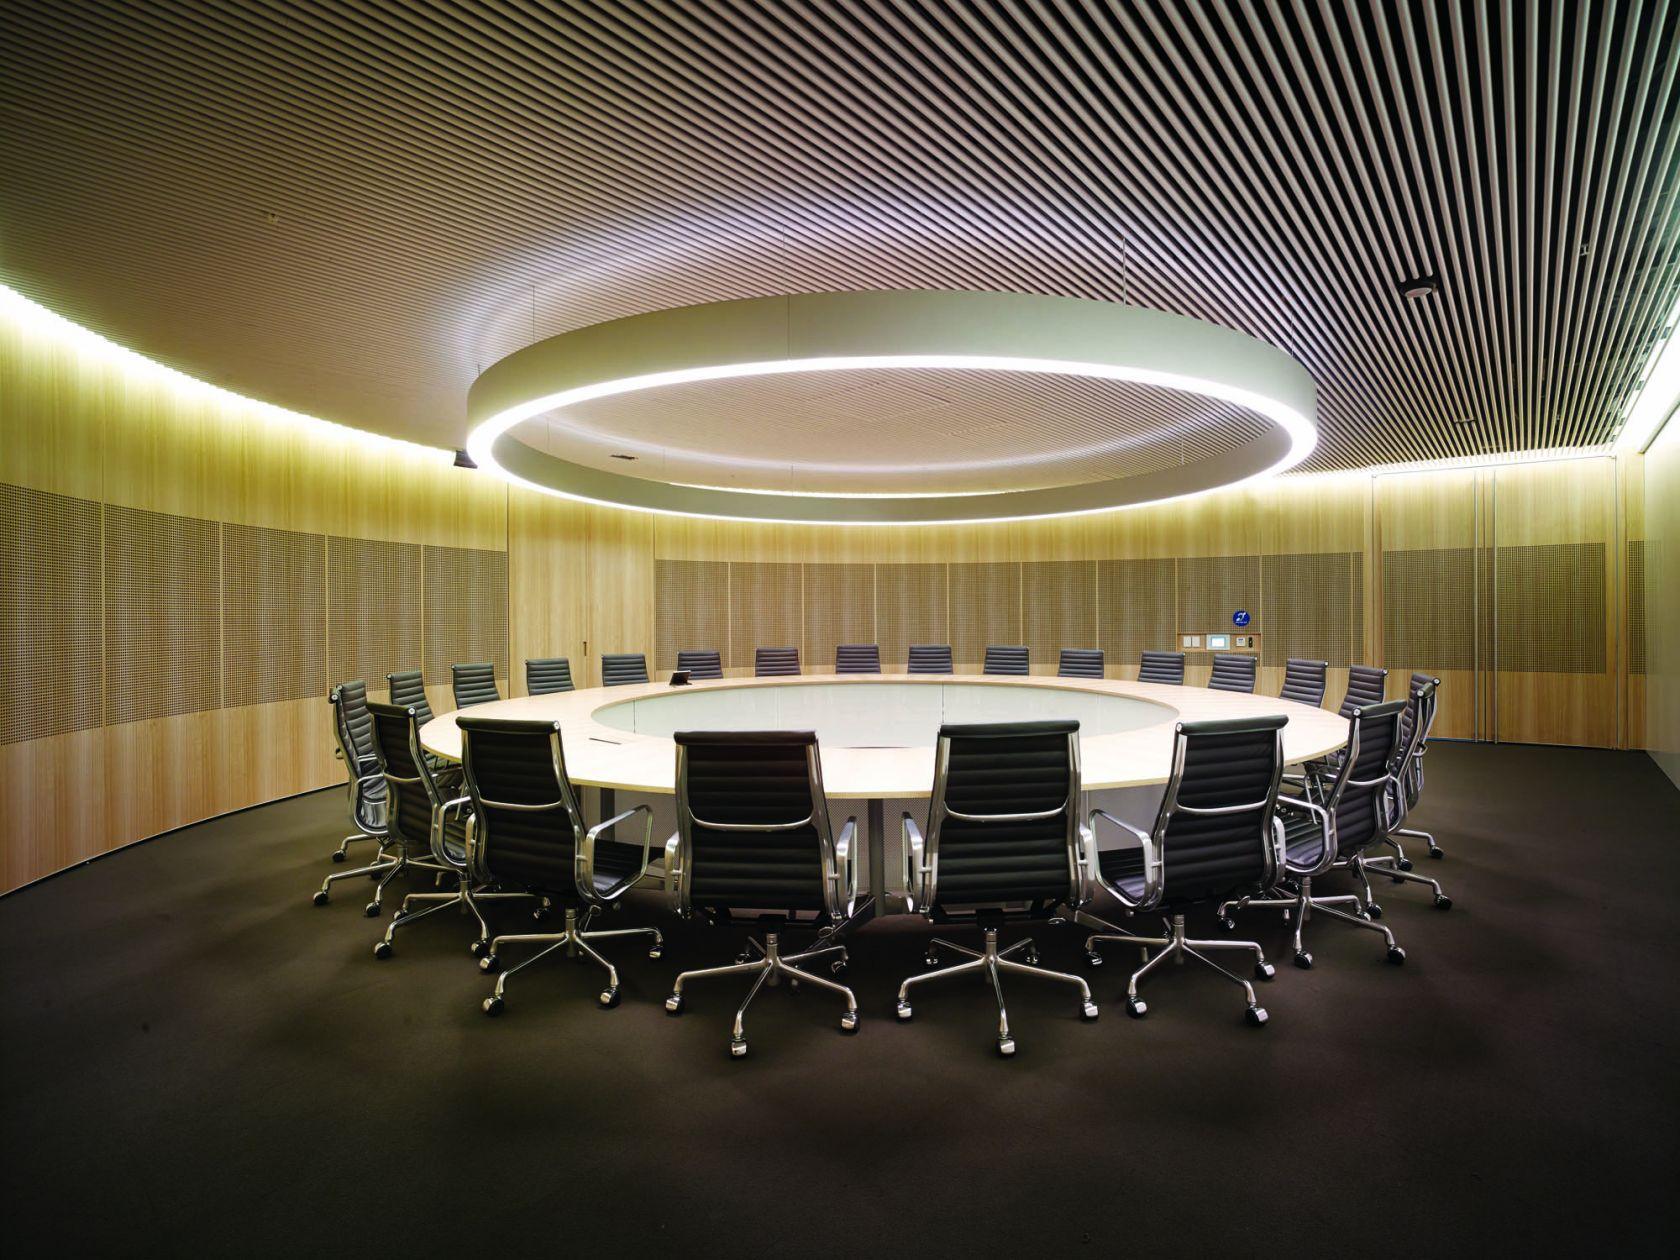 commonwealth parliament office sydney construction fitout boardroom round feature ceiling halo light timber